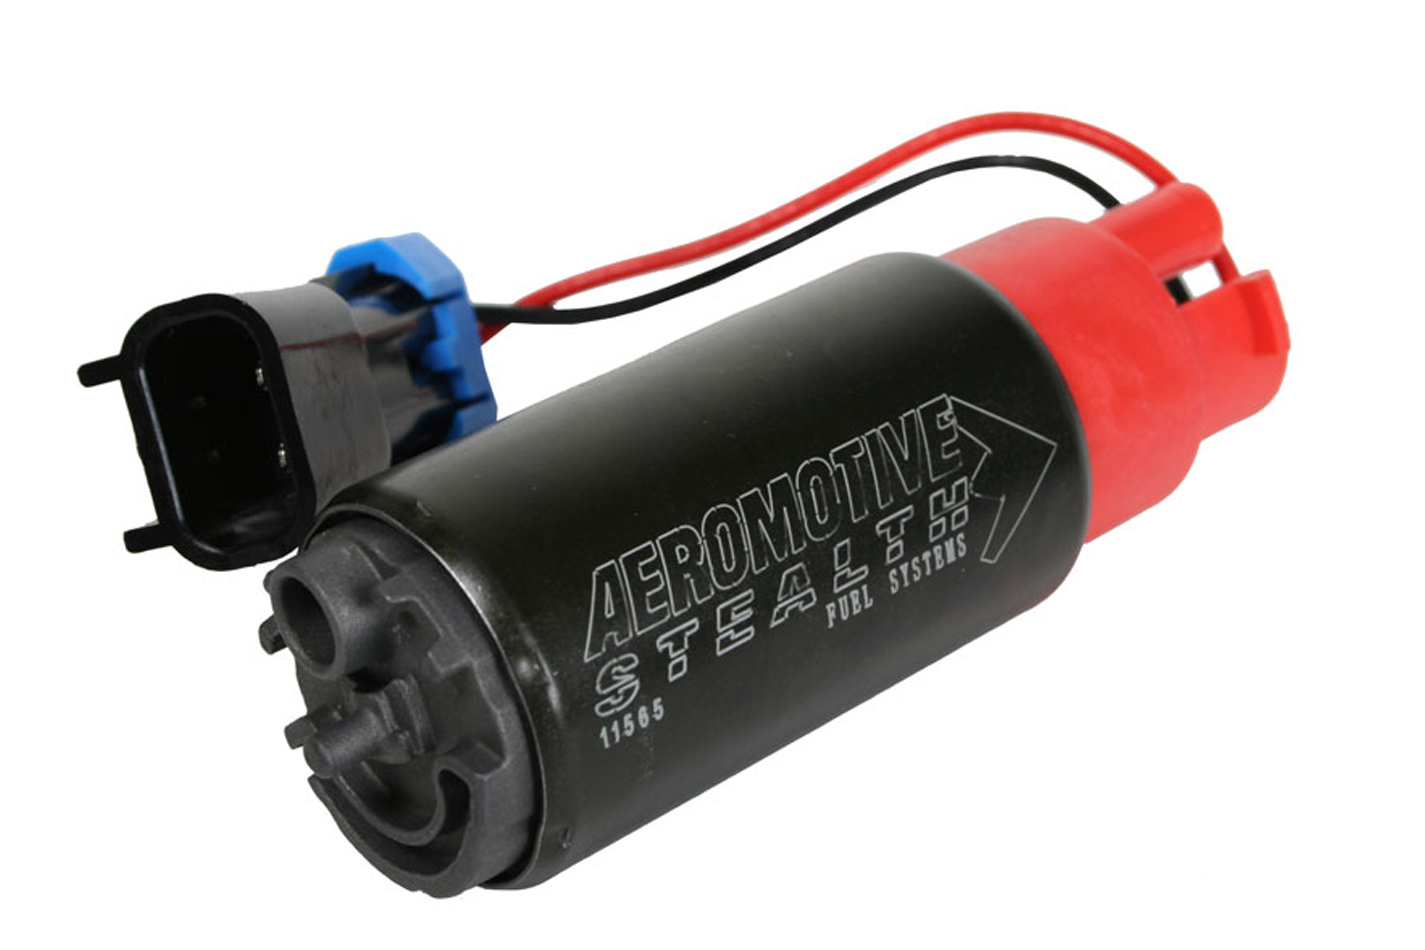 Aeromotive 11565 Fuel Pump, 325 Stealth, Electric, In-Tank, 325 lph at 40 psi, Offset Filter Sock Inlet, 5/16 in Hose Barb Outlet, Install Kit, E85 / Gas, Kit